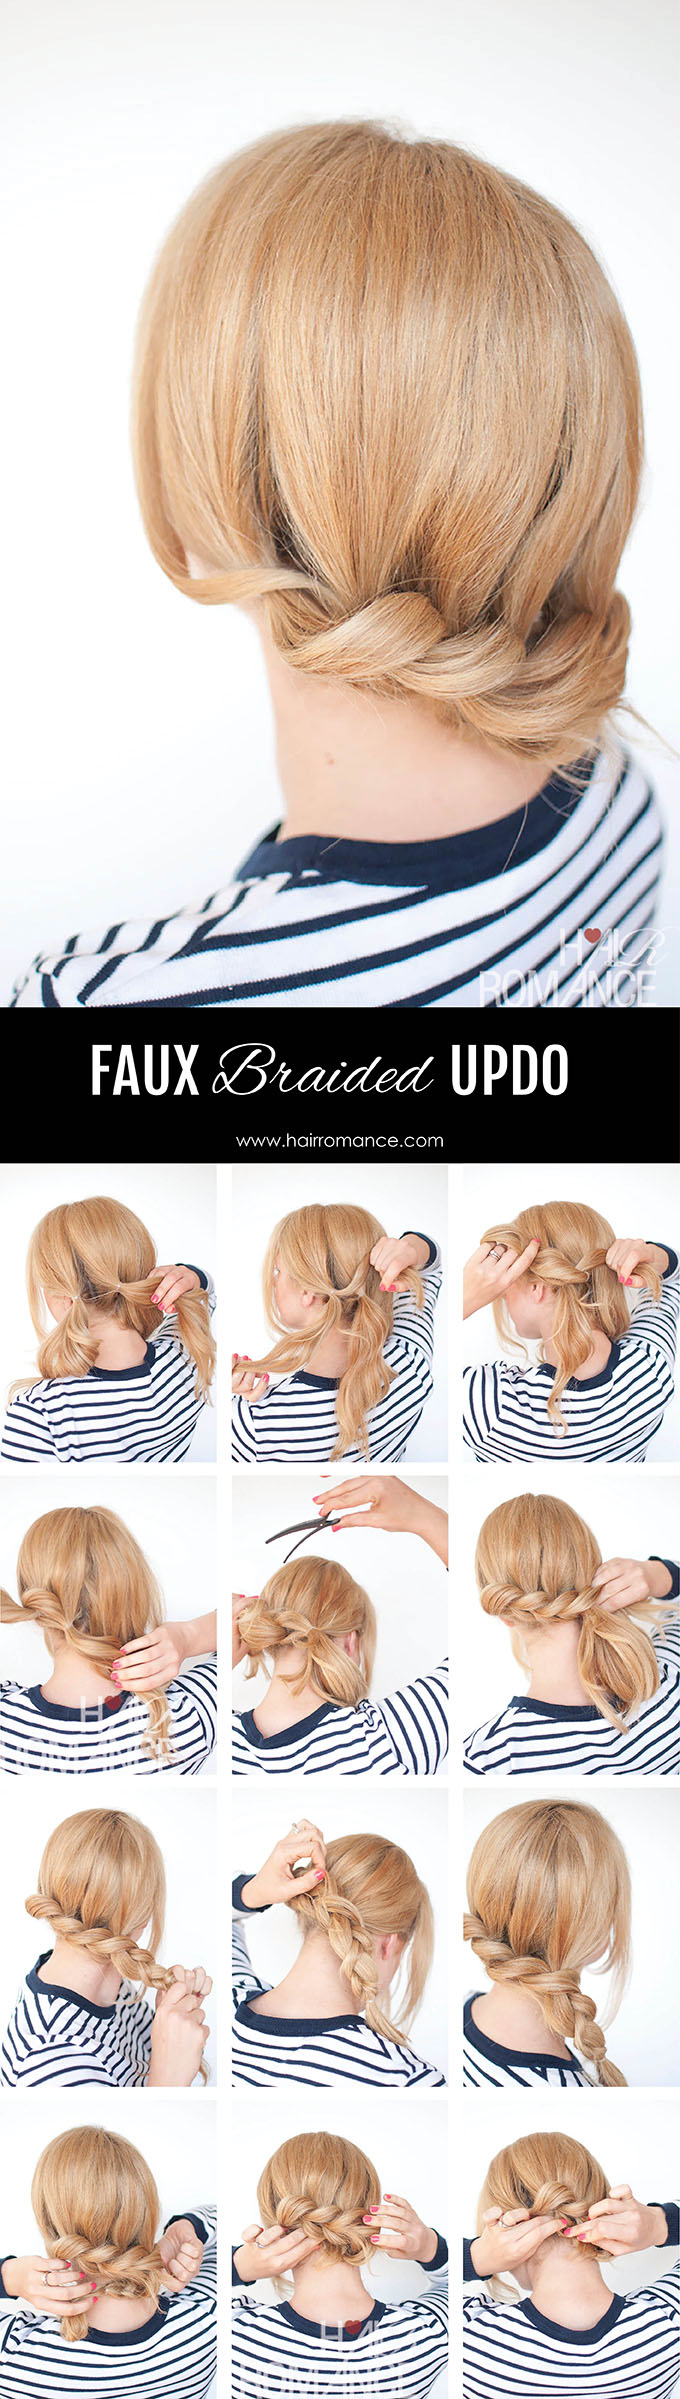 Hair-Romance-Pull-through-braids-tutorial-4